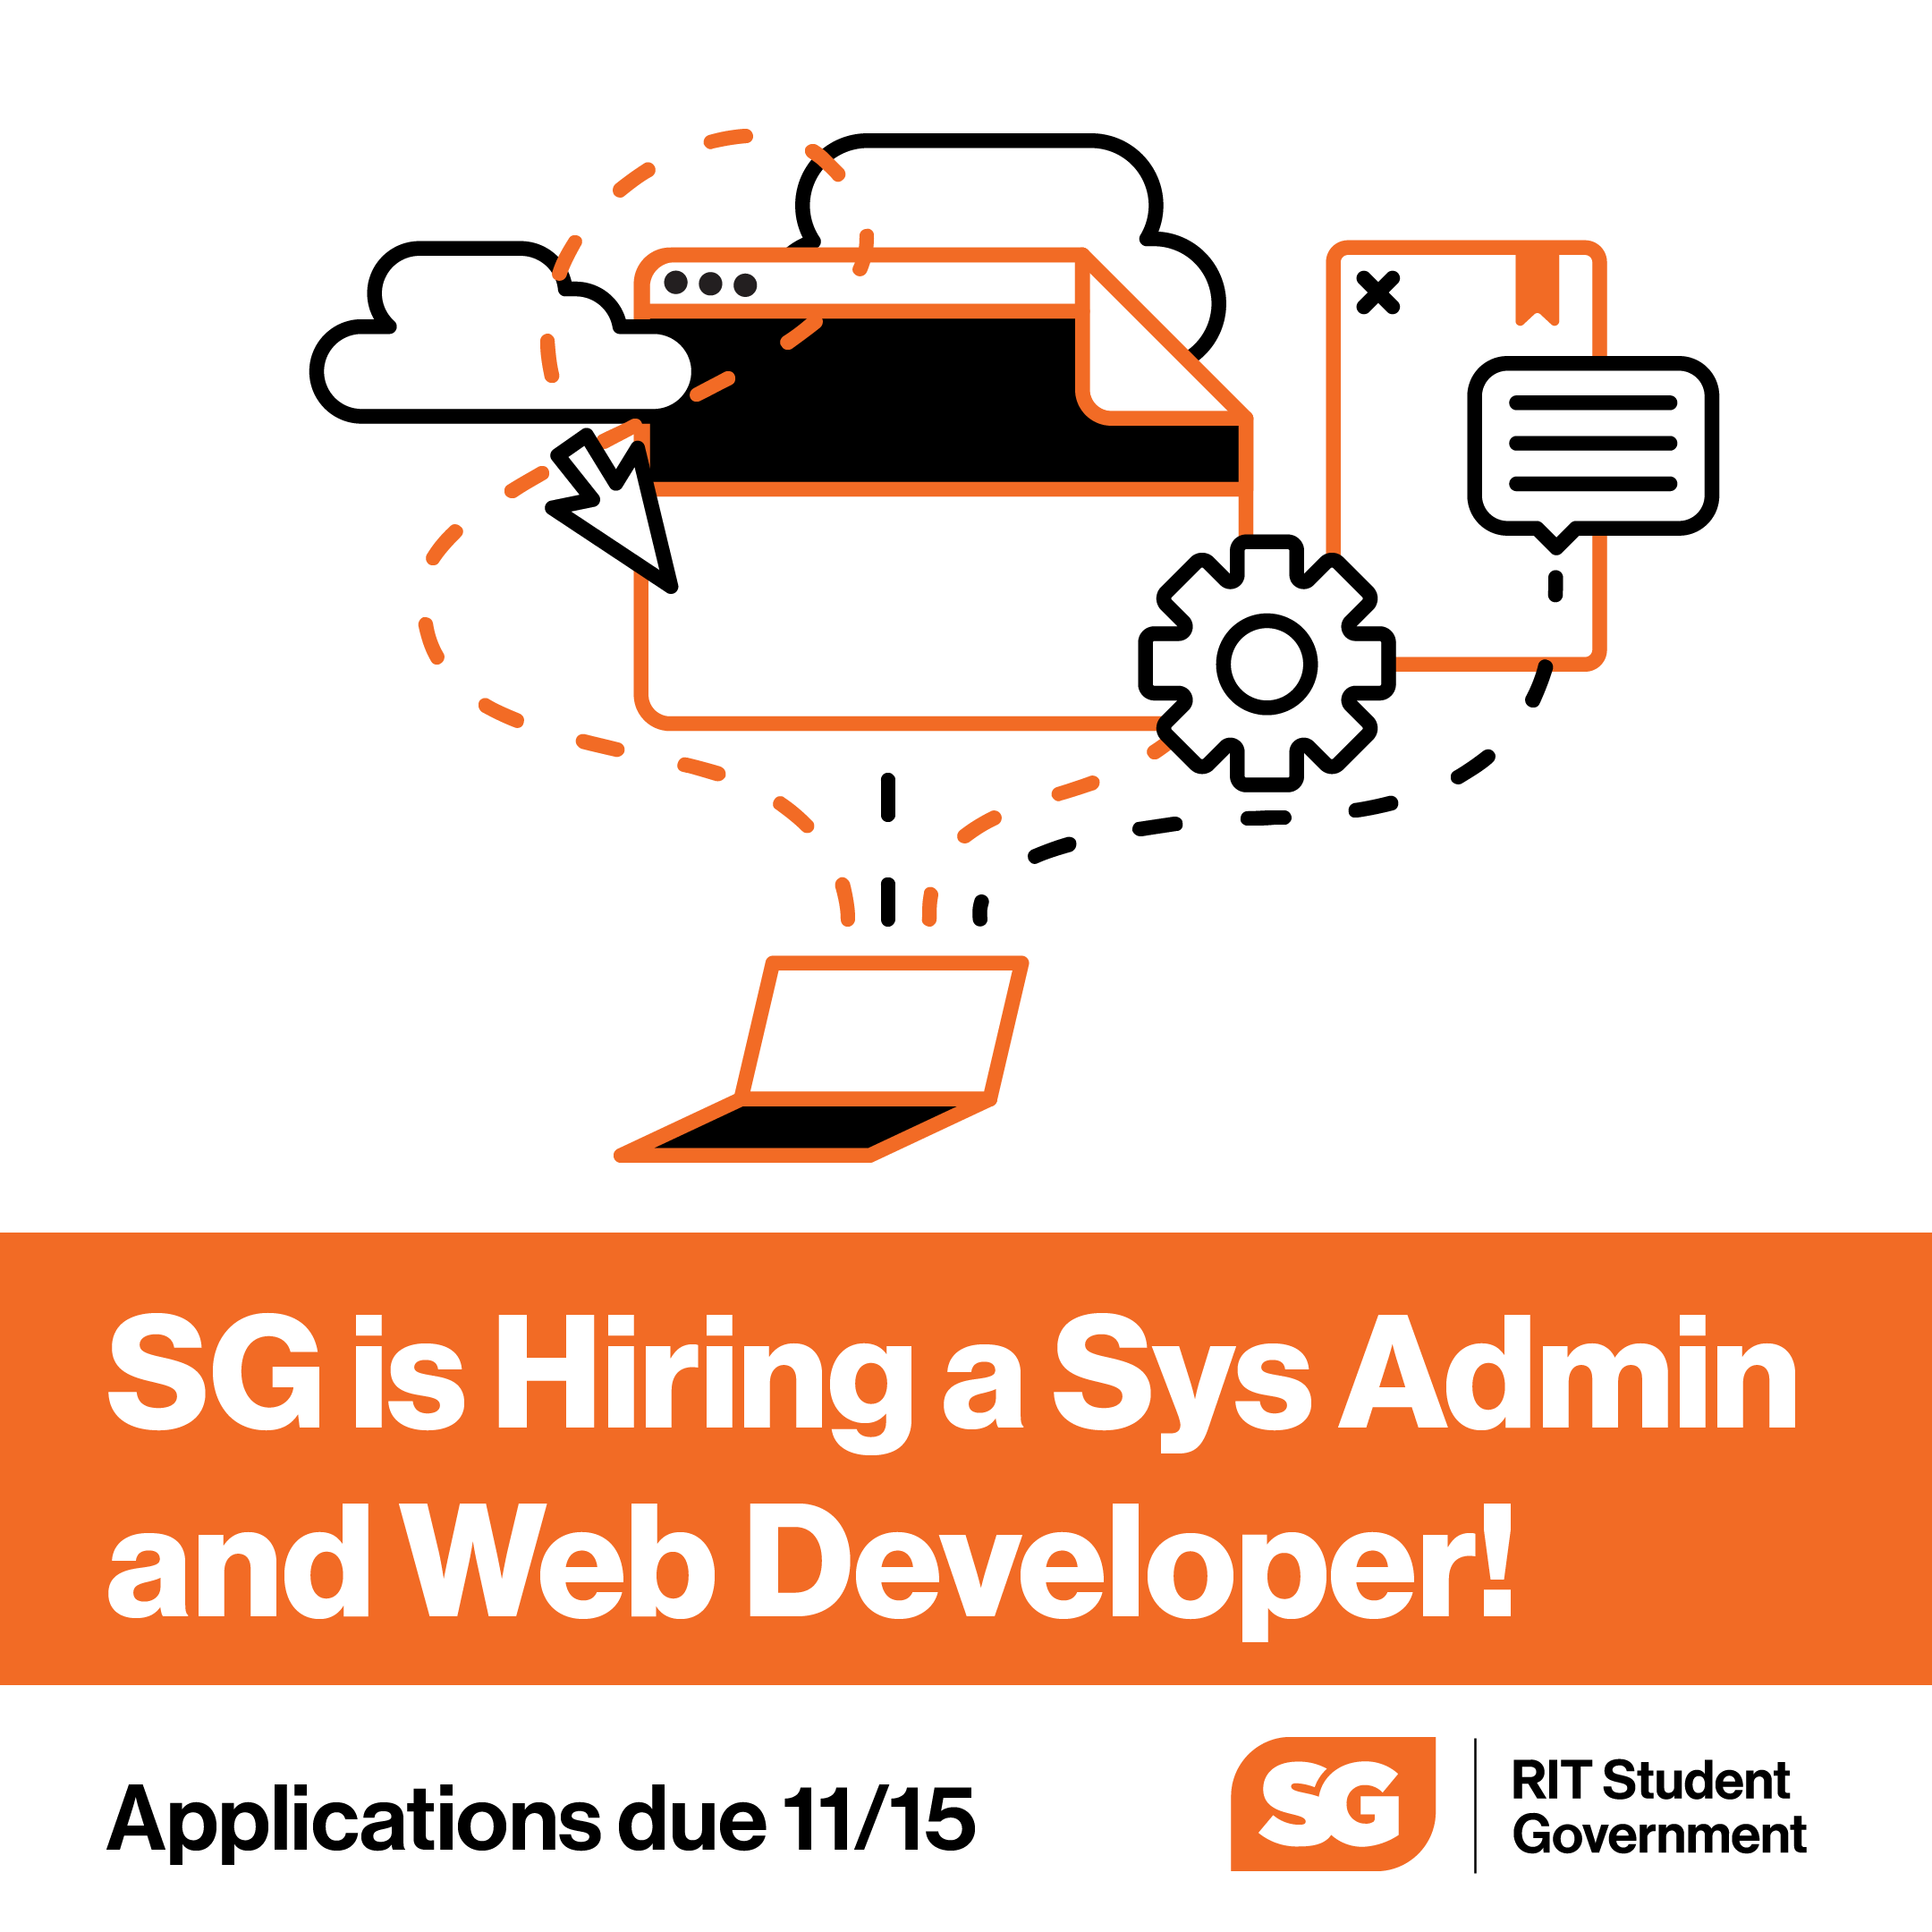 Services Team is Hiring a Web Developer and Systems Admin!